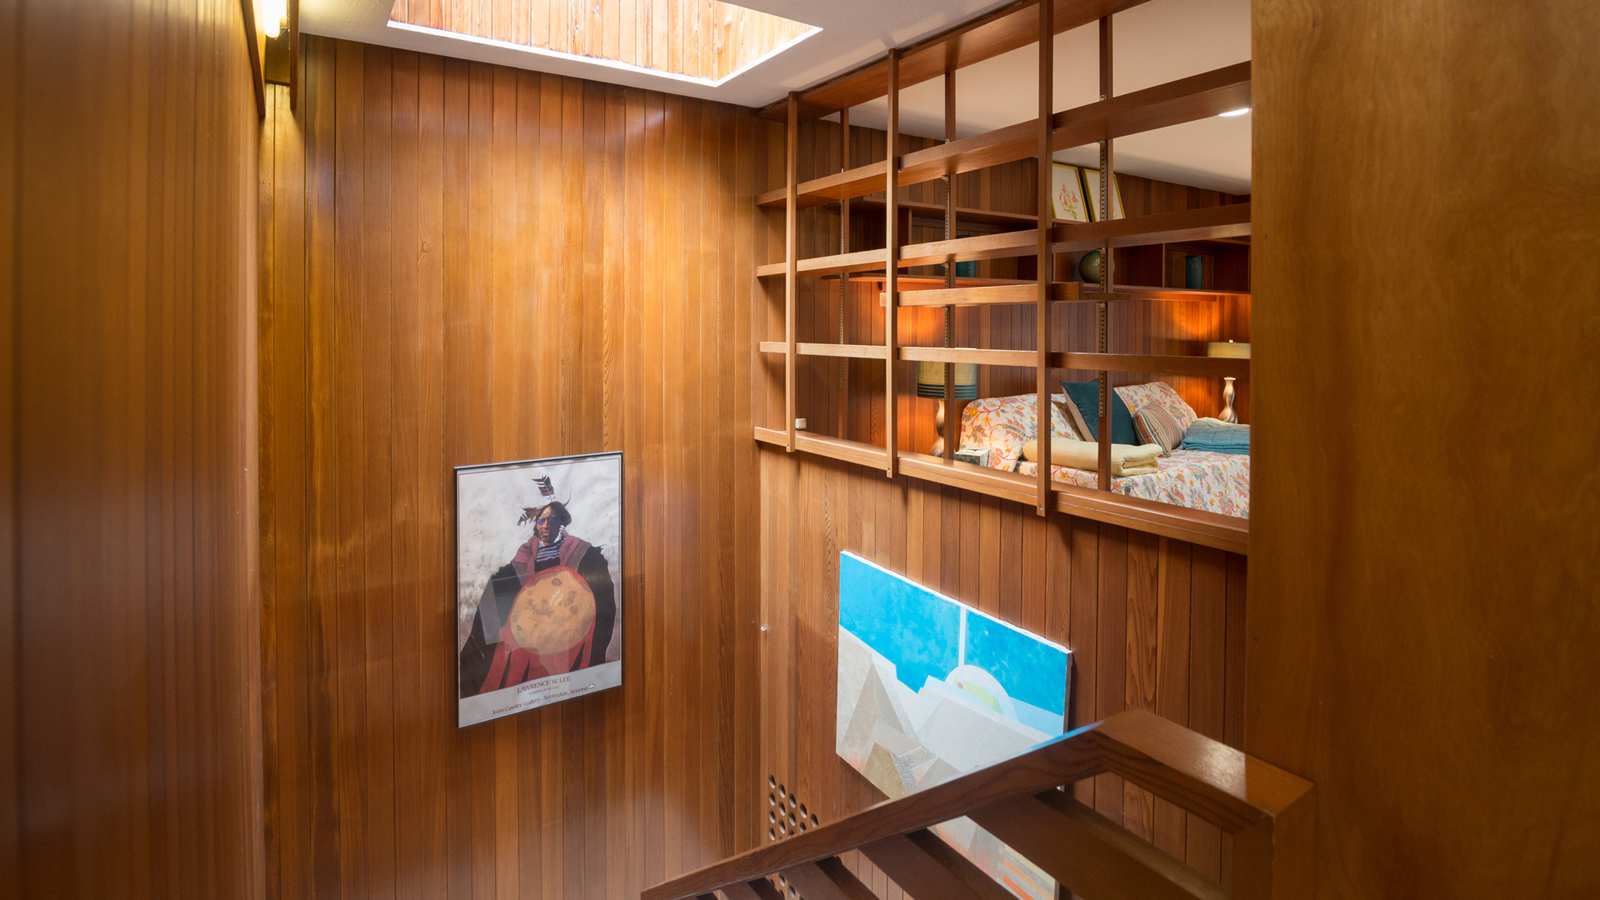 Warm wood panelling is used throughout the Tivadar and Dorothy Balogh House and the stairwell is illuminated by a rectangular skylight